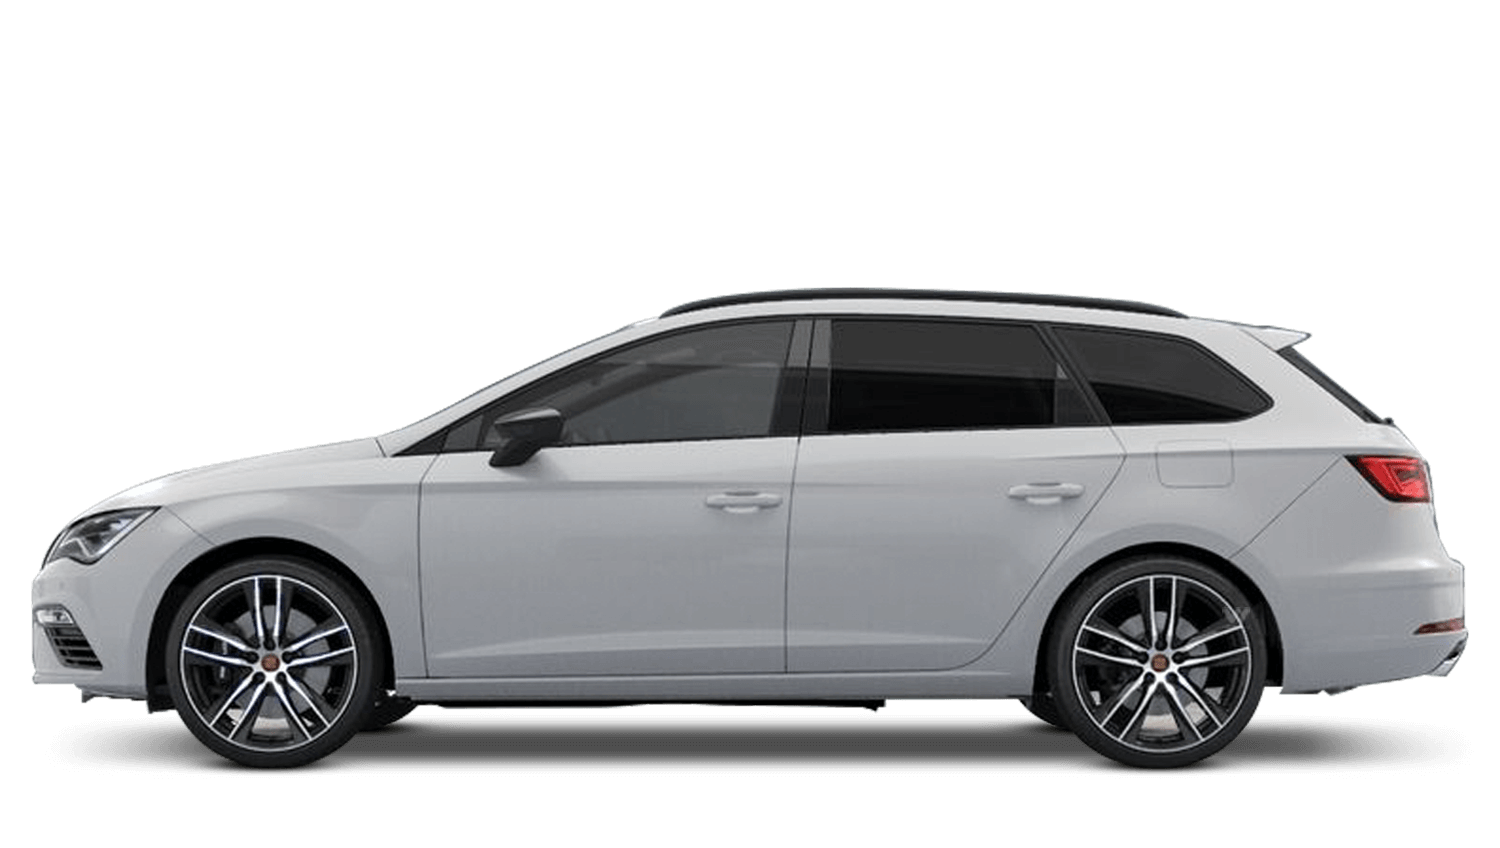 Nevada White (Metallic) SEAT Leon Estate Cupra